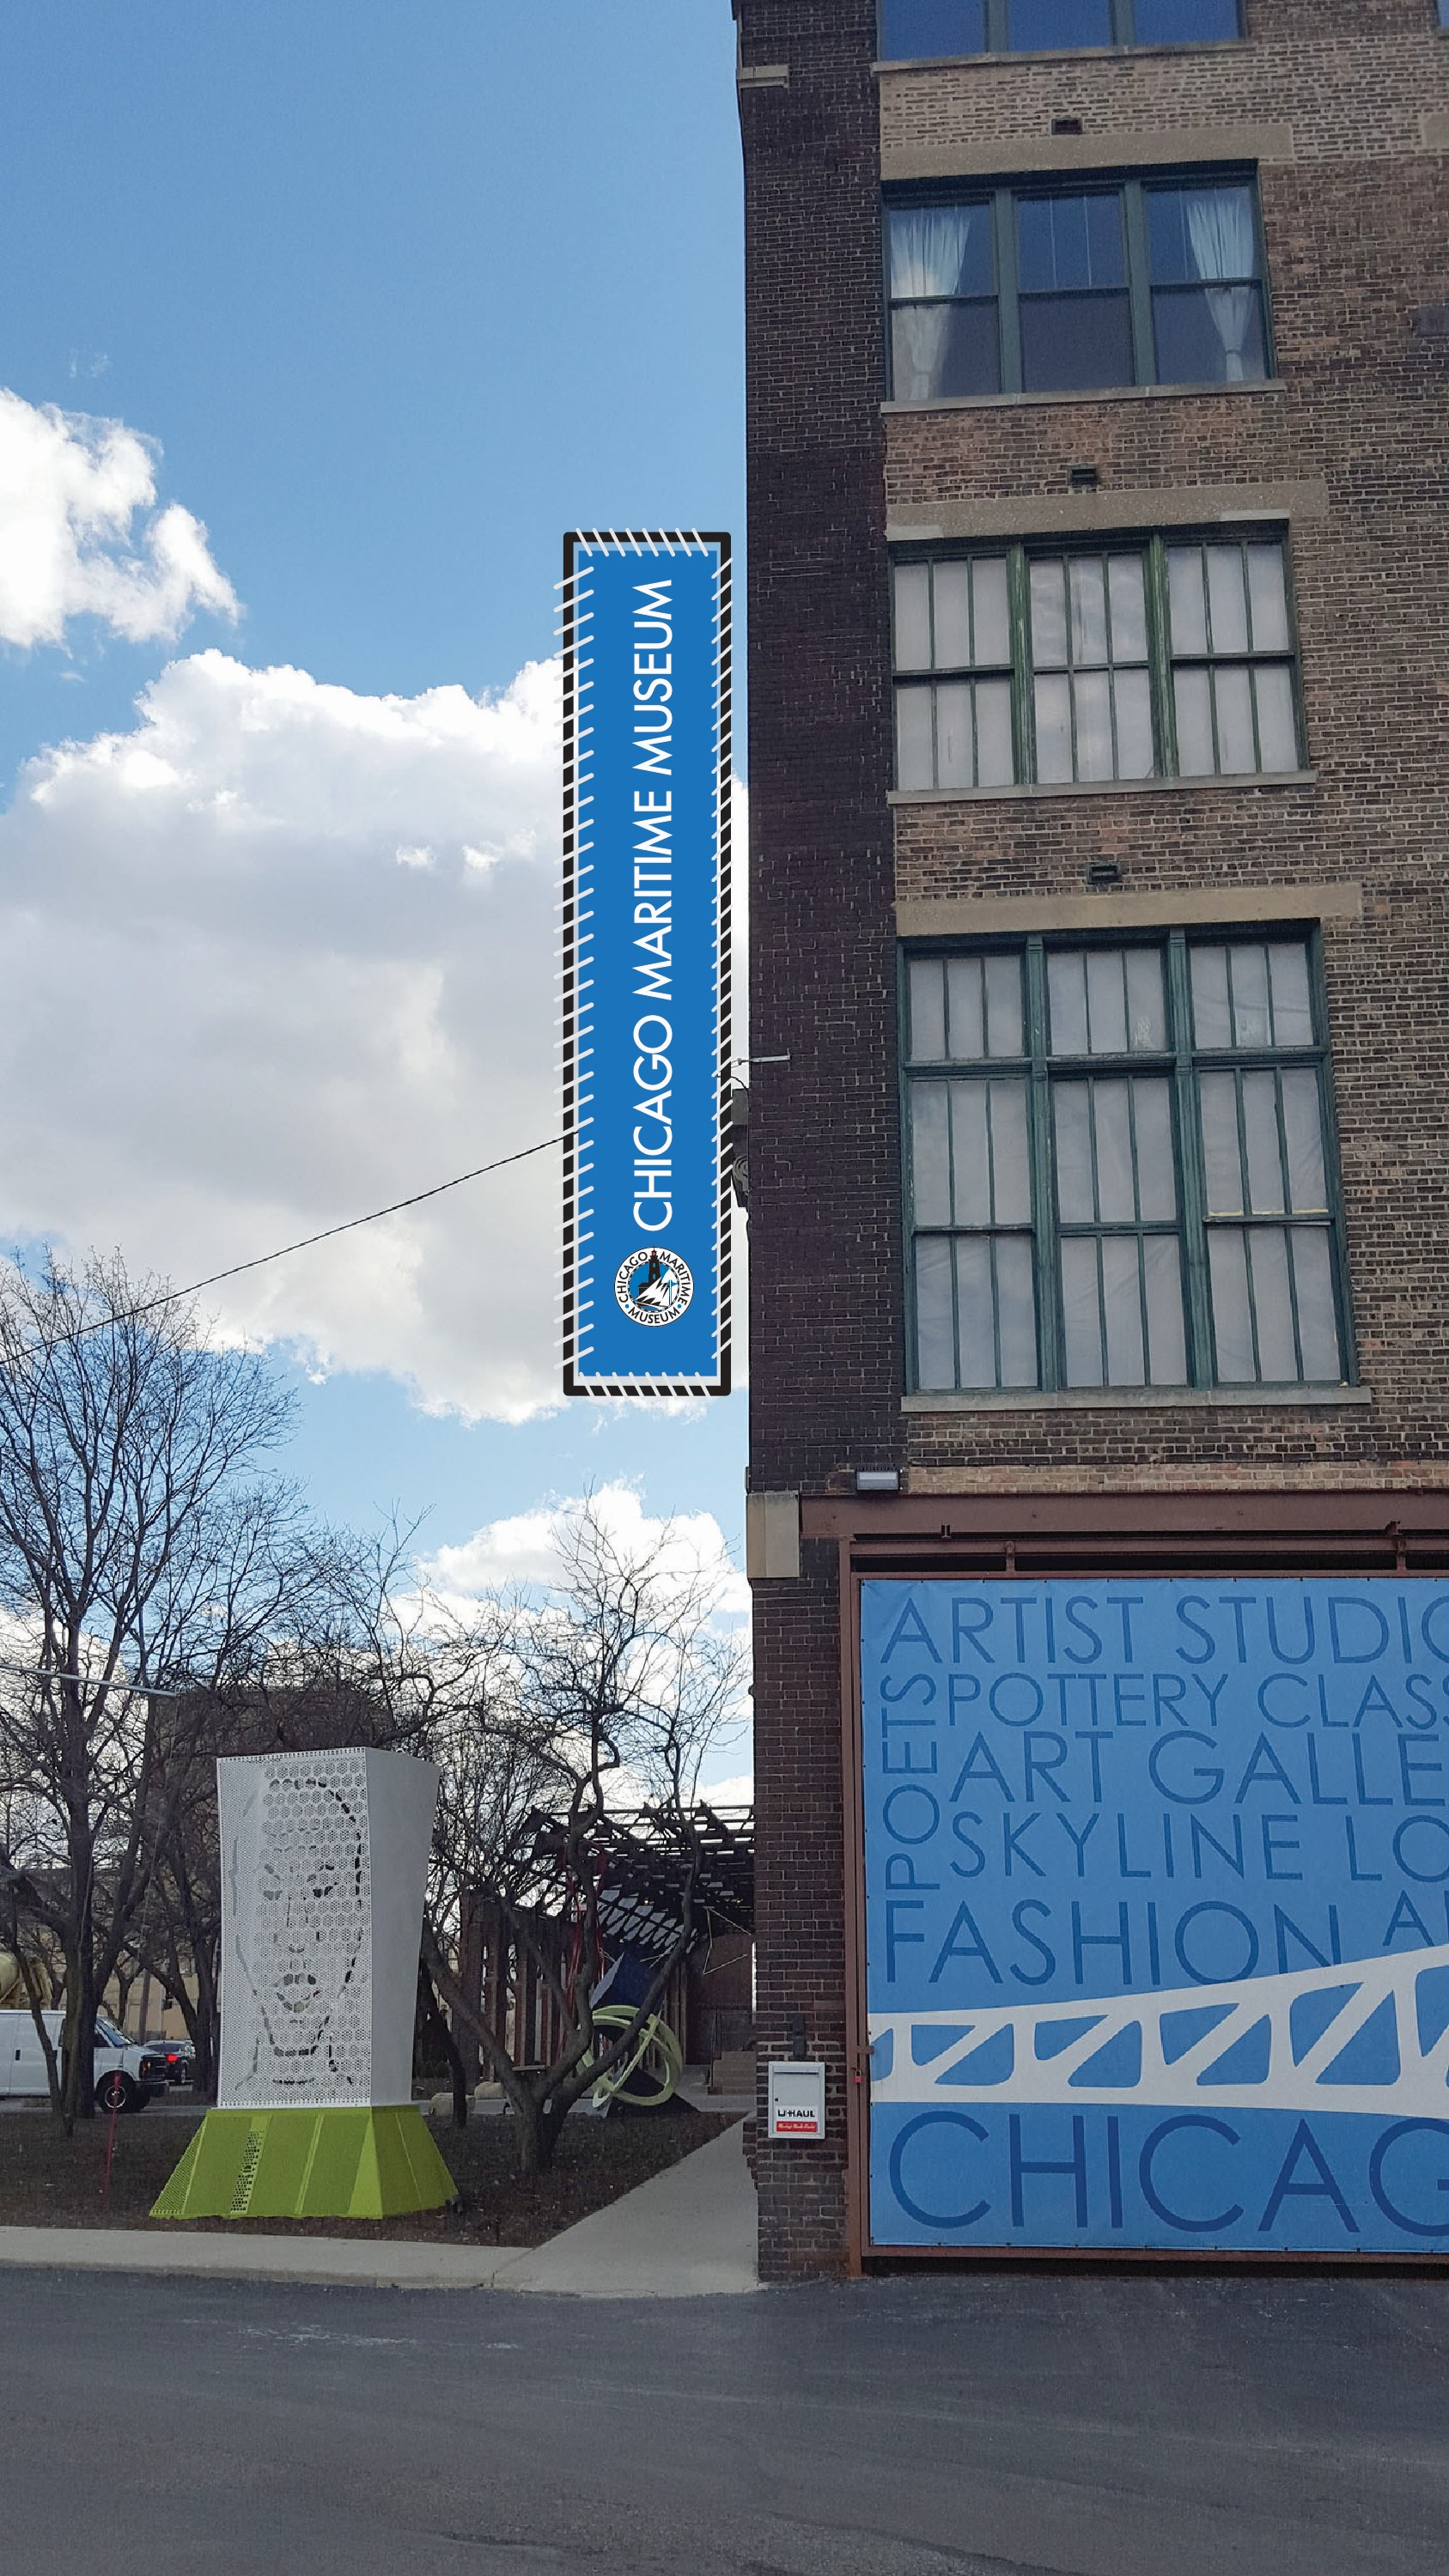 The Chicago Maritime Museum opened in 2016 in the first floor of the Bridgeport Art Center next to Bubbly Creek. Image courtesy of the Chicago Maritime Museum.